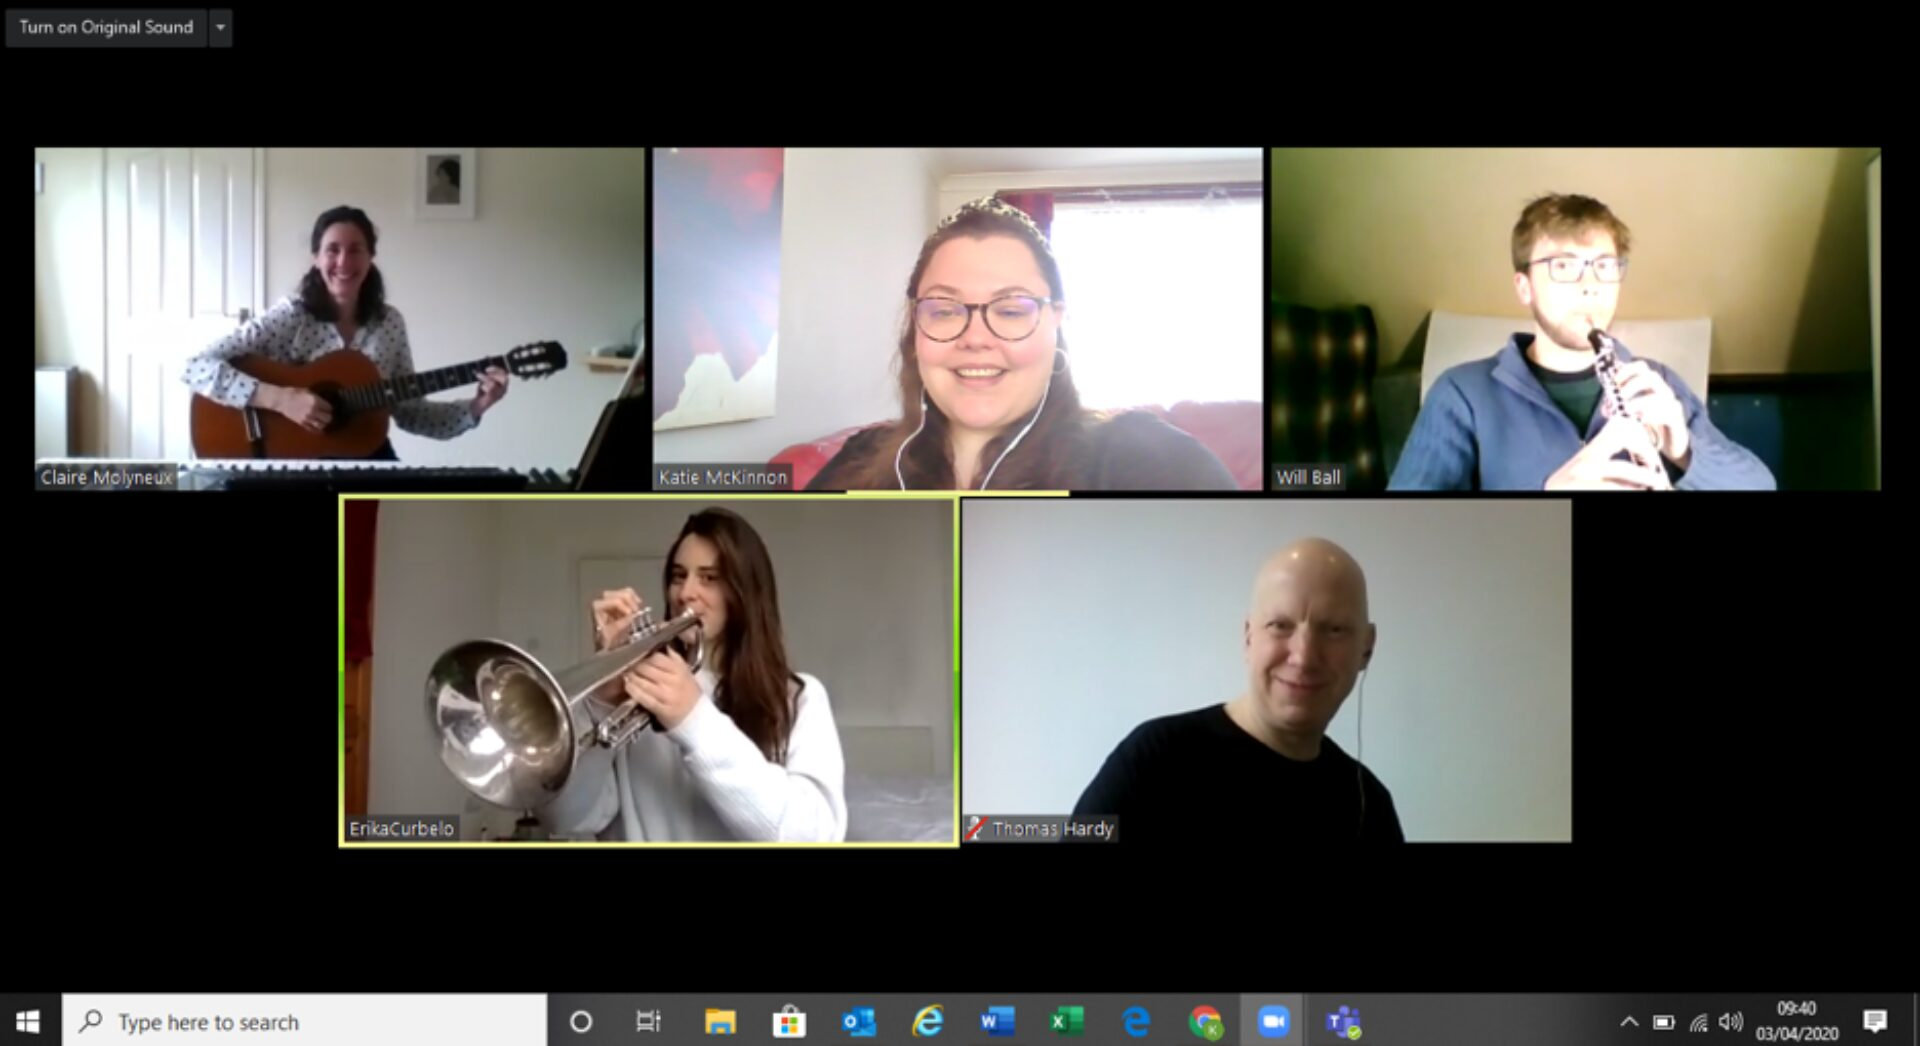 A Together in Sound online session.